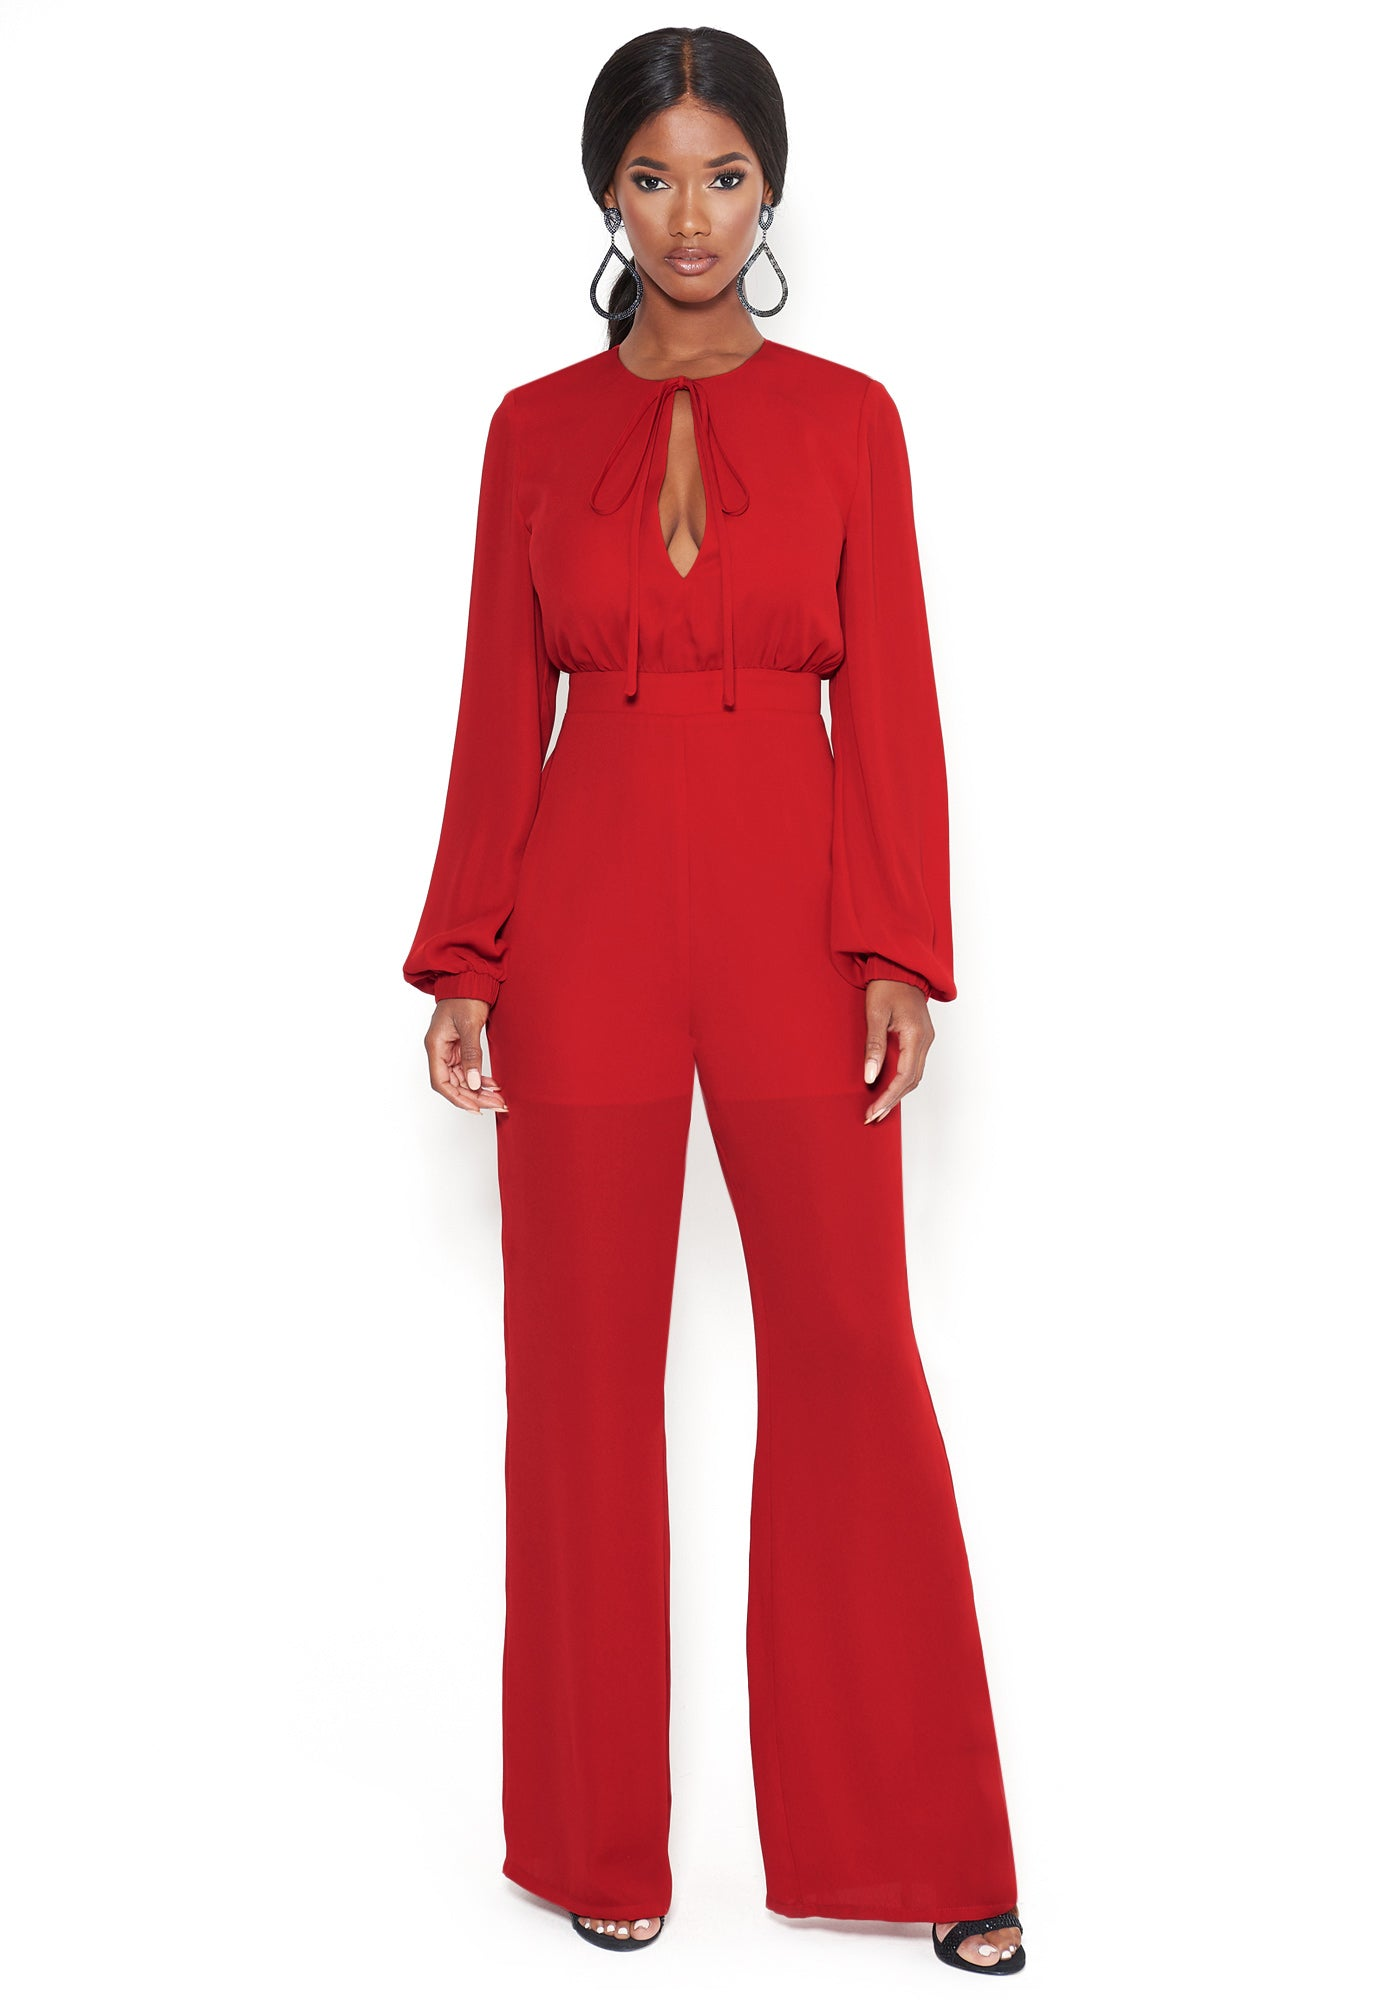 Bebe Women's Long Sleeve Tie Front Jumpsuit, Size 00 in BARBADOS CHERRY